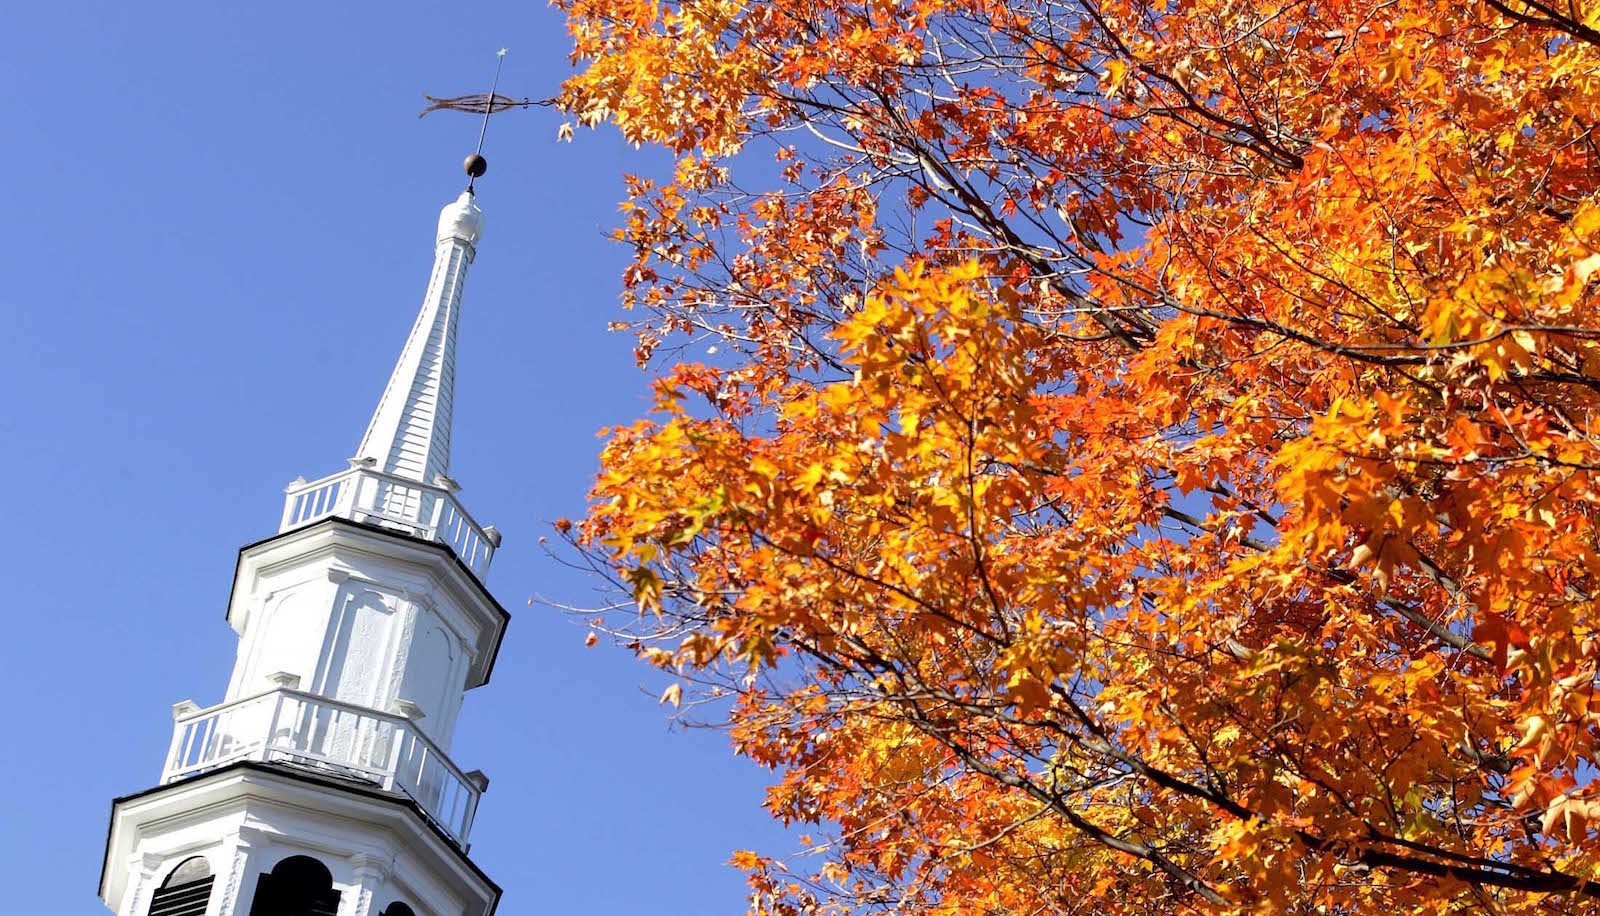 The steeple of The First Congregational Church is juxtaposed with fall colors in Sharon, Connecticut October 13, 2004. REUTERS/Jessica Rinaldi. NO RIGHTS CLEARANCES OR PERMISSIONS ARE REQUIRED FOR THIS IMAGE.  JR - RTRDBUN